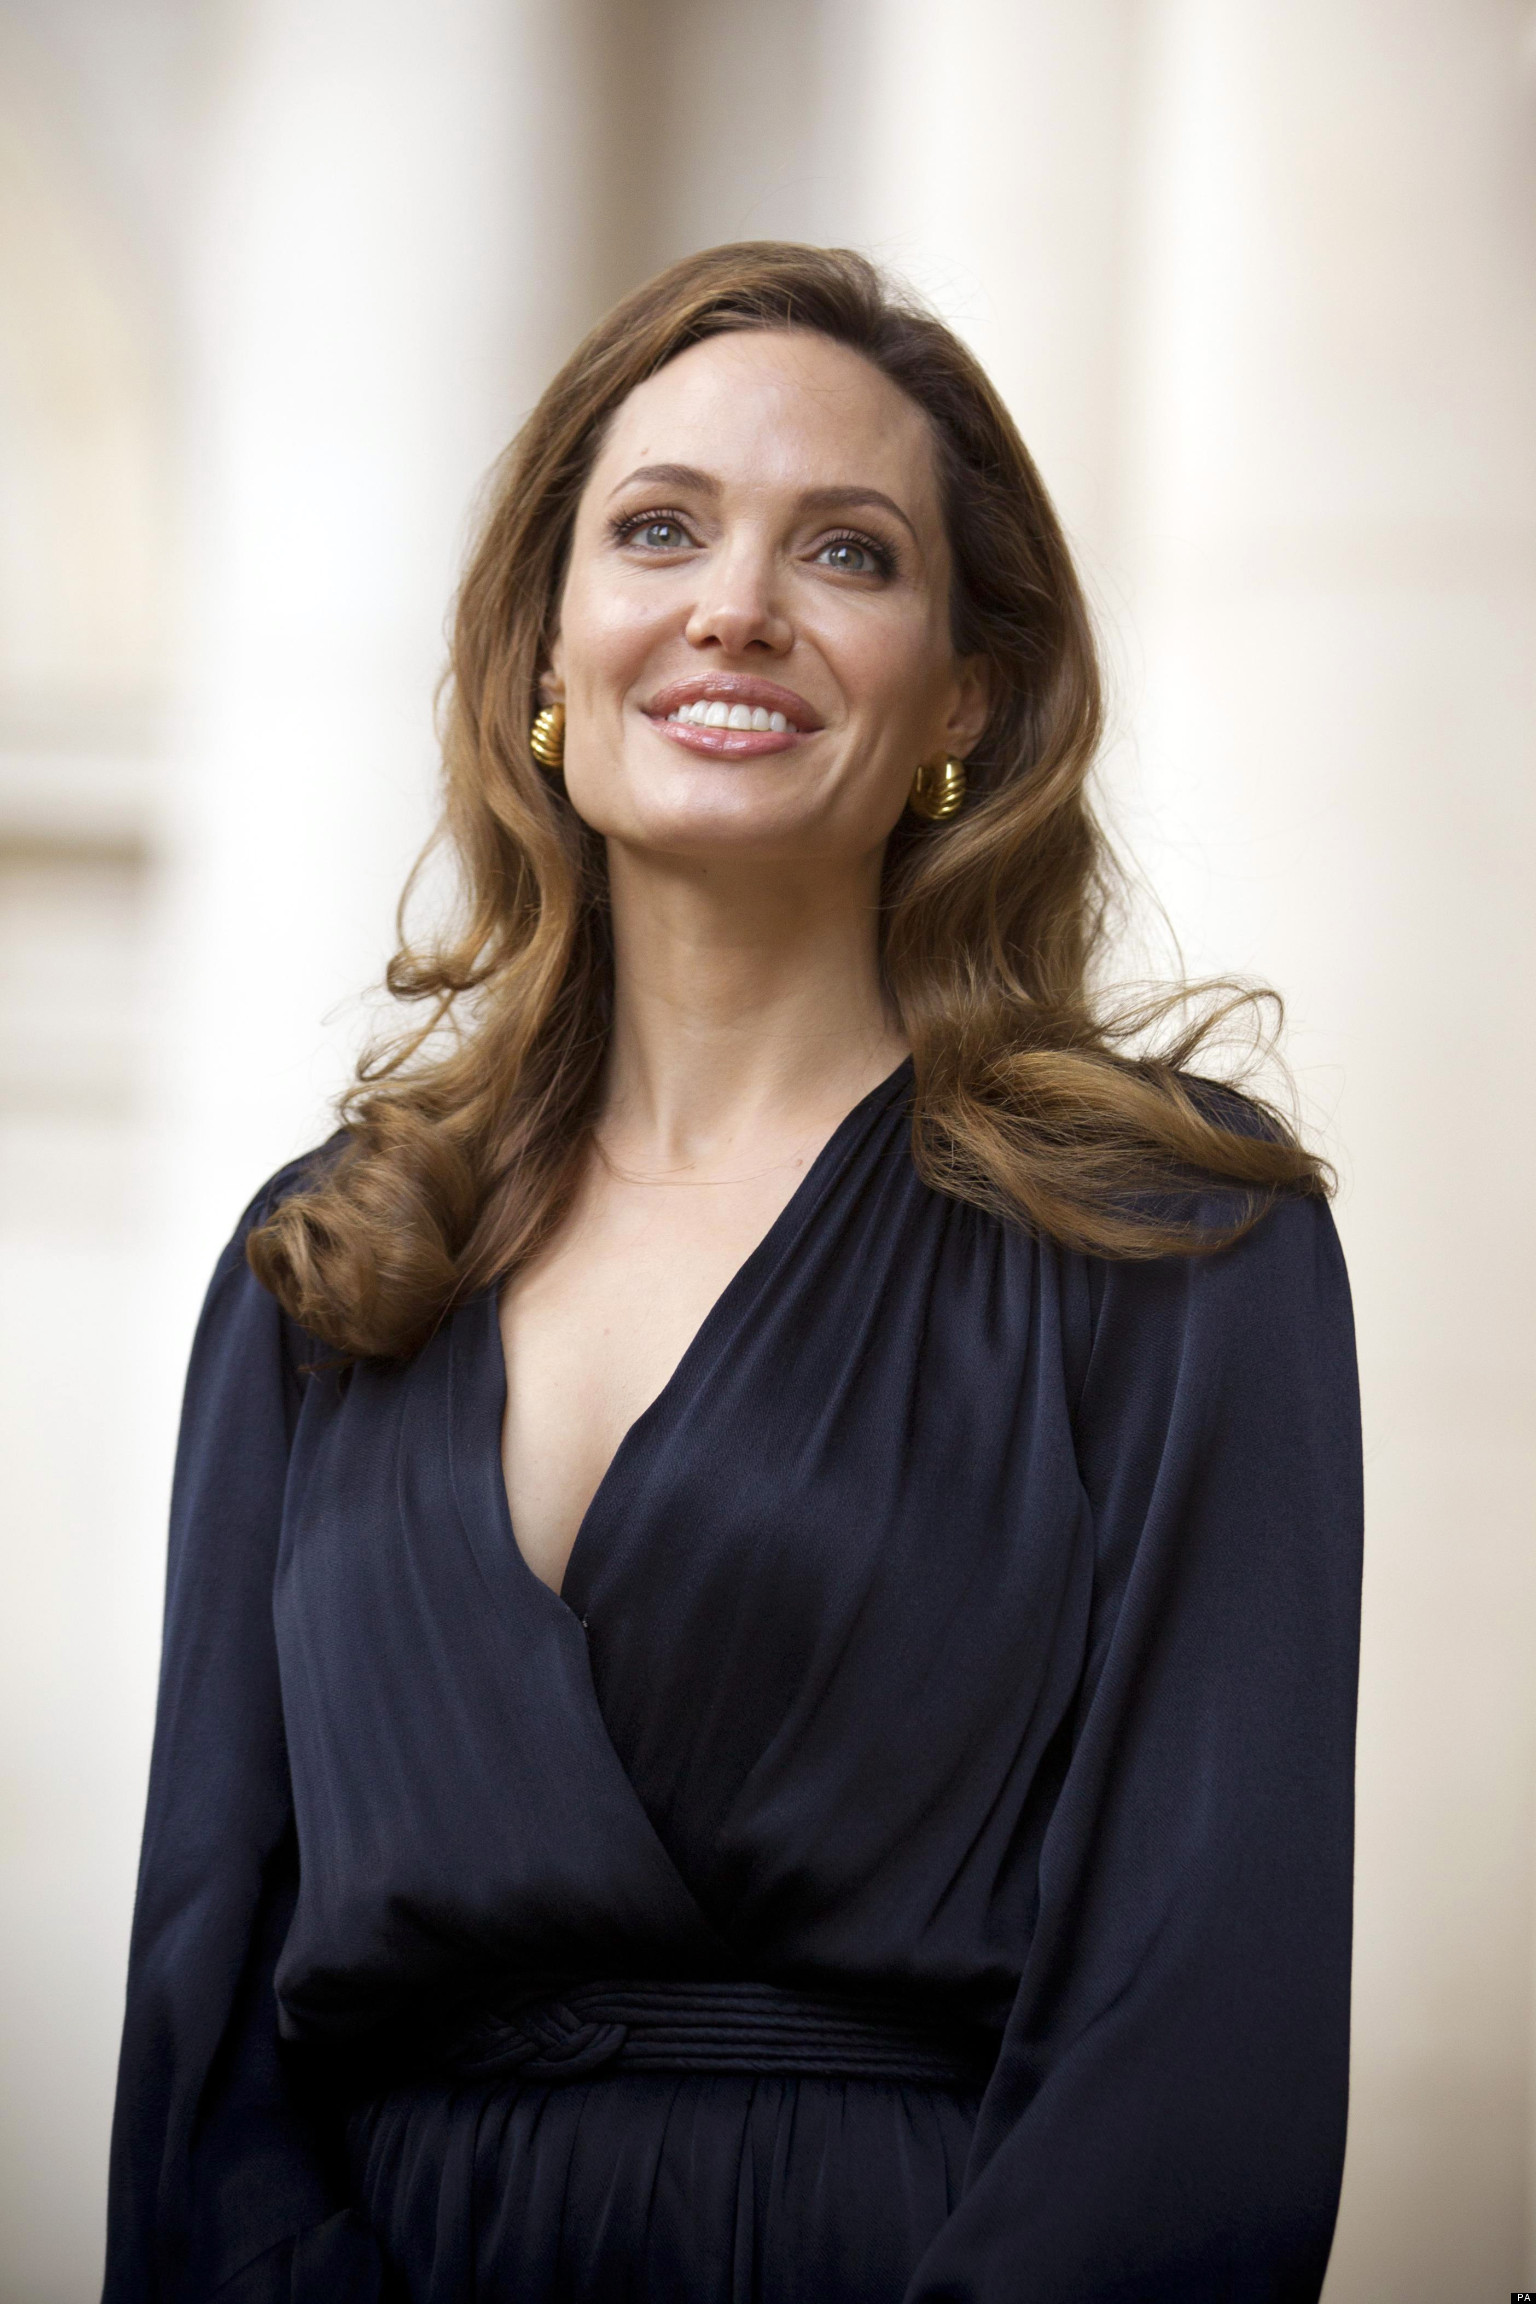 PICTURES: Six Reasons Angelina Jolie Stopped Being Unpopular...